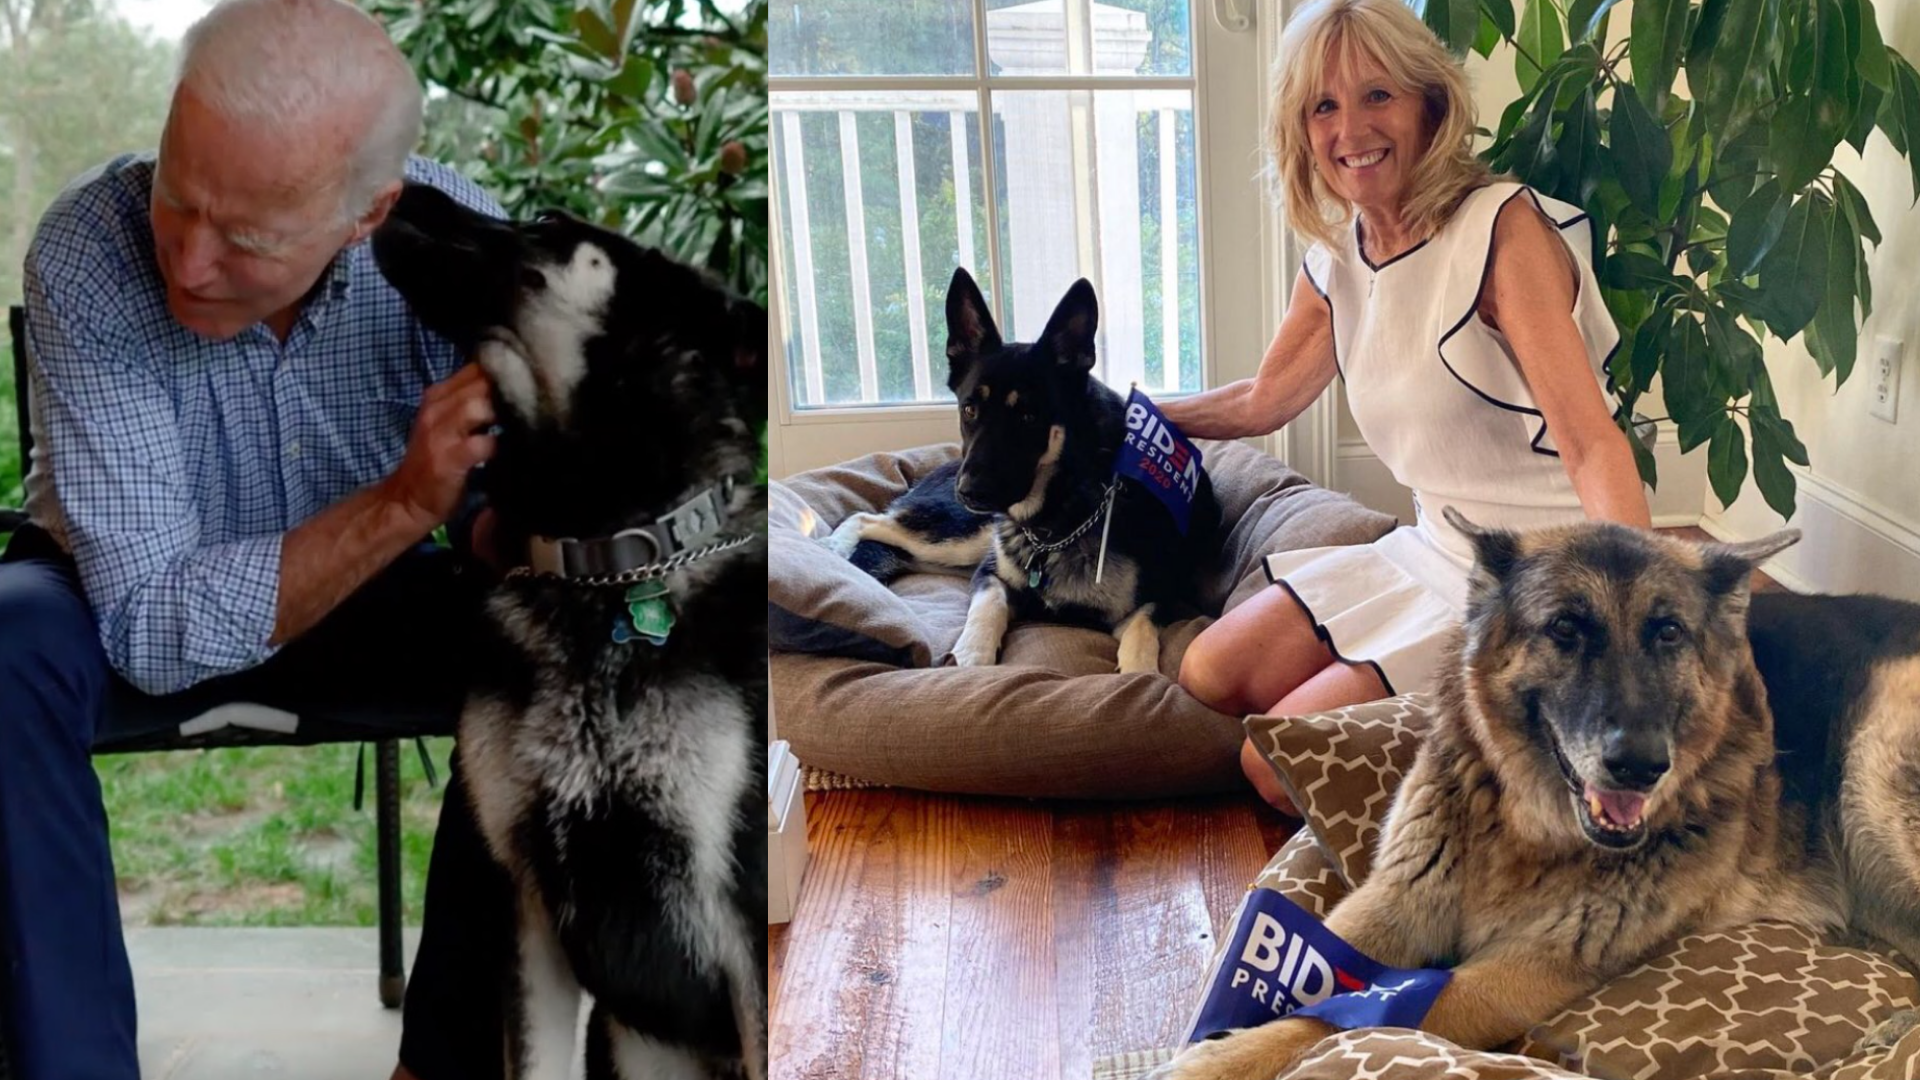 Biden's Dogs Take Internet by Storm